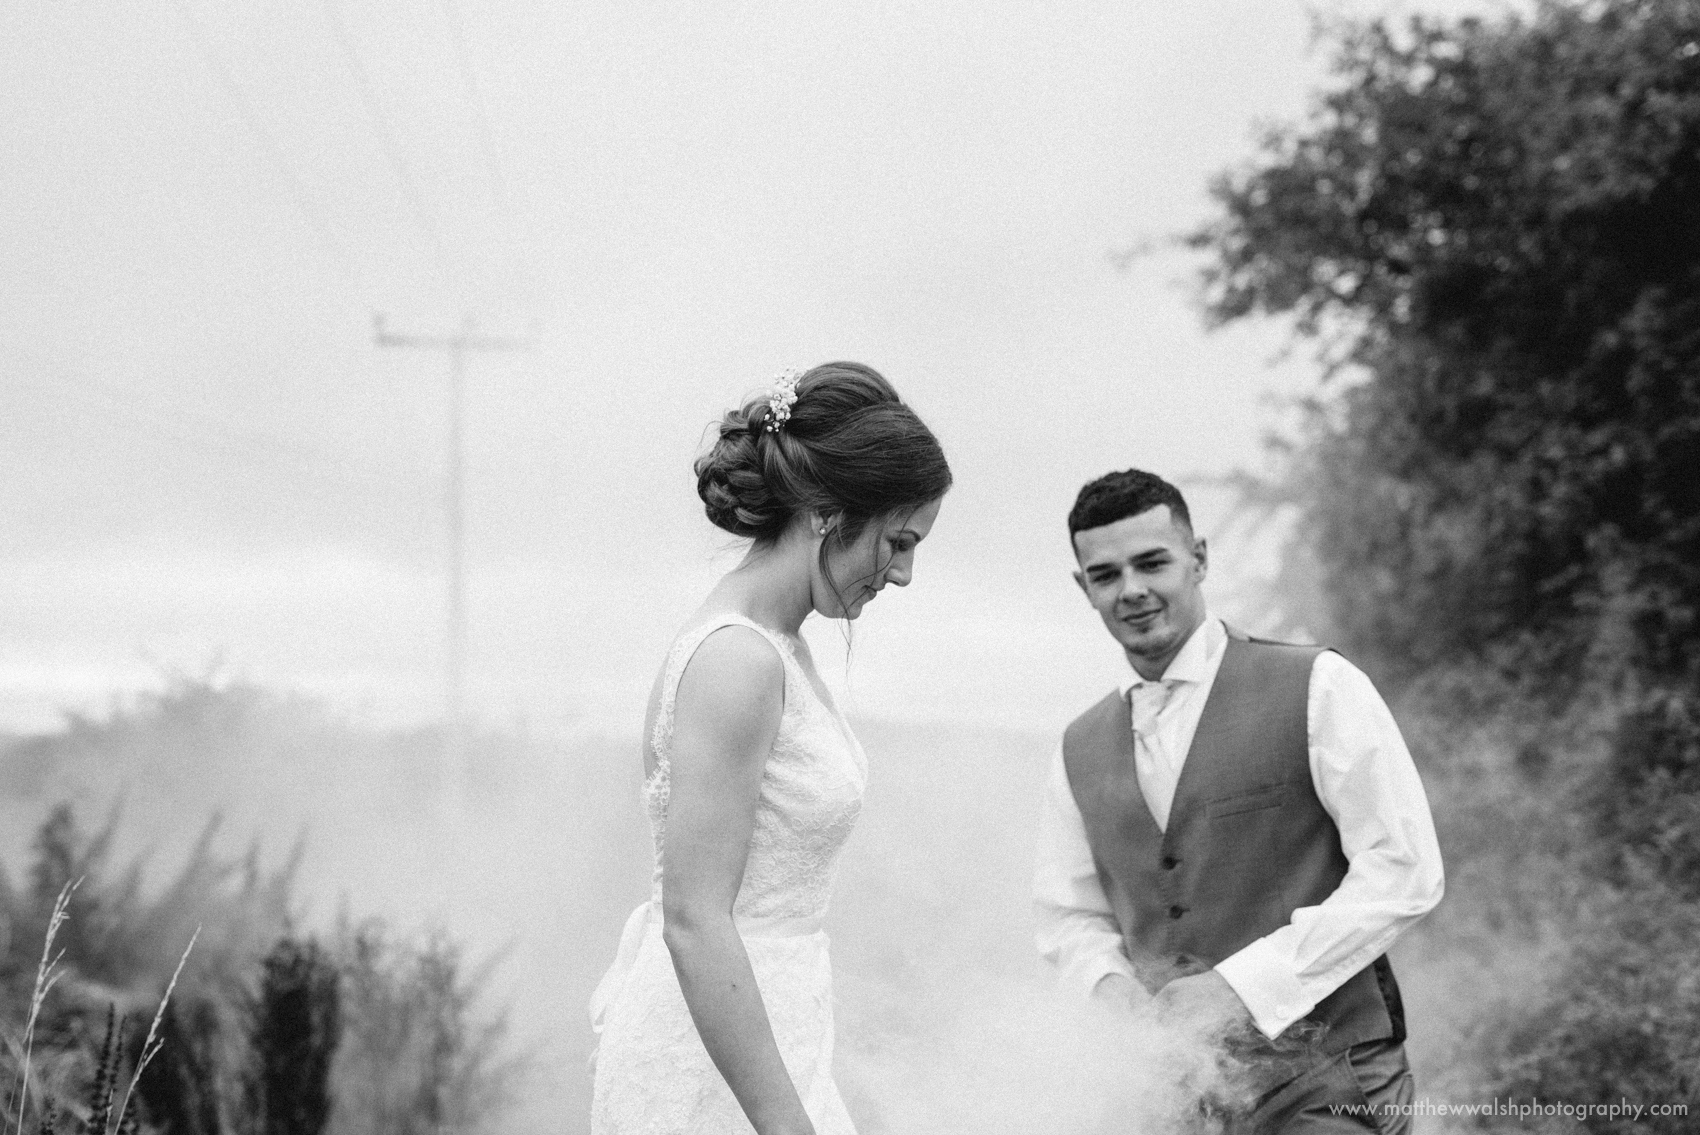 Using a smoke bomb to create a little magical atmosphere